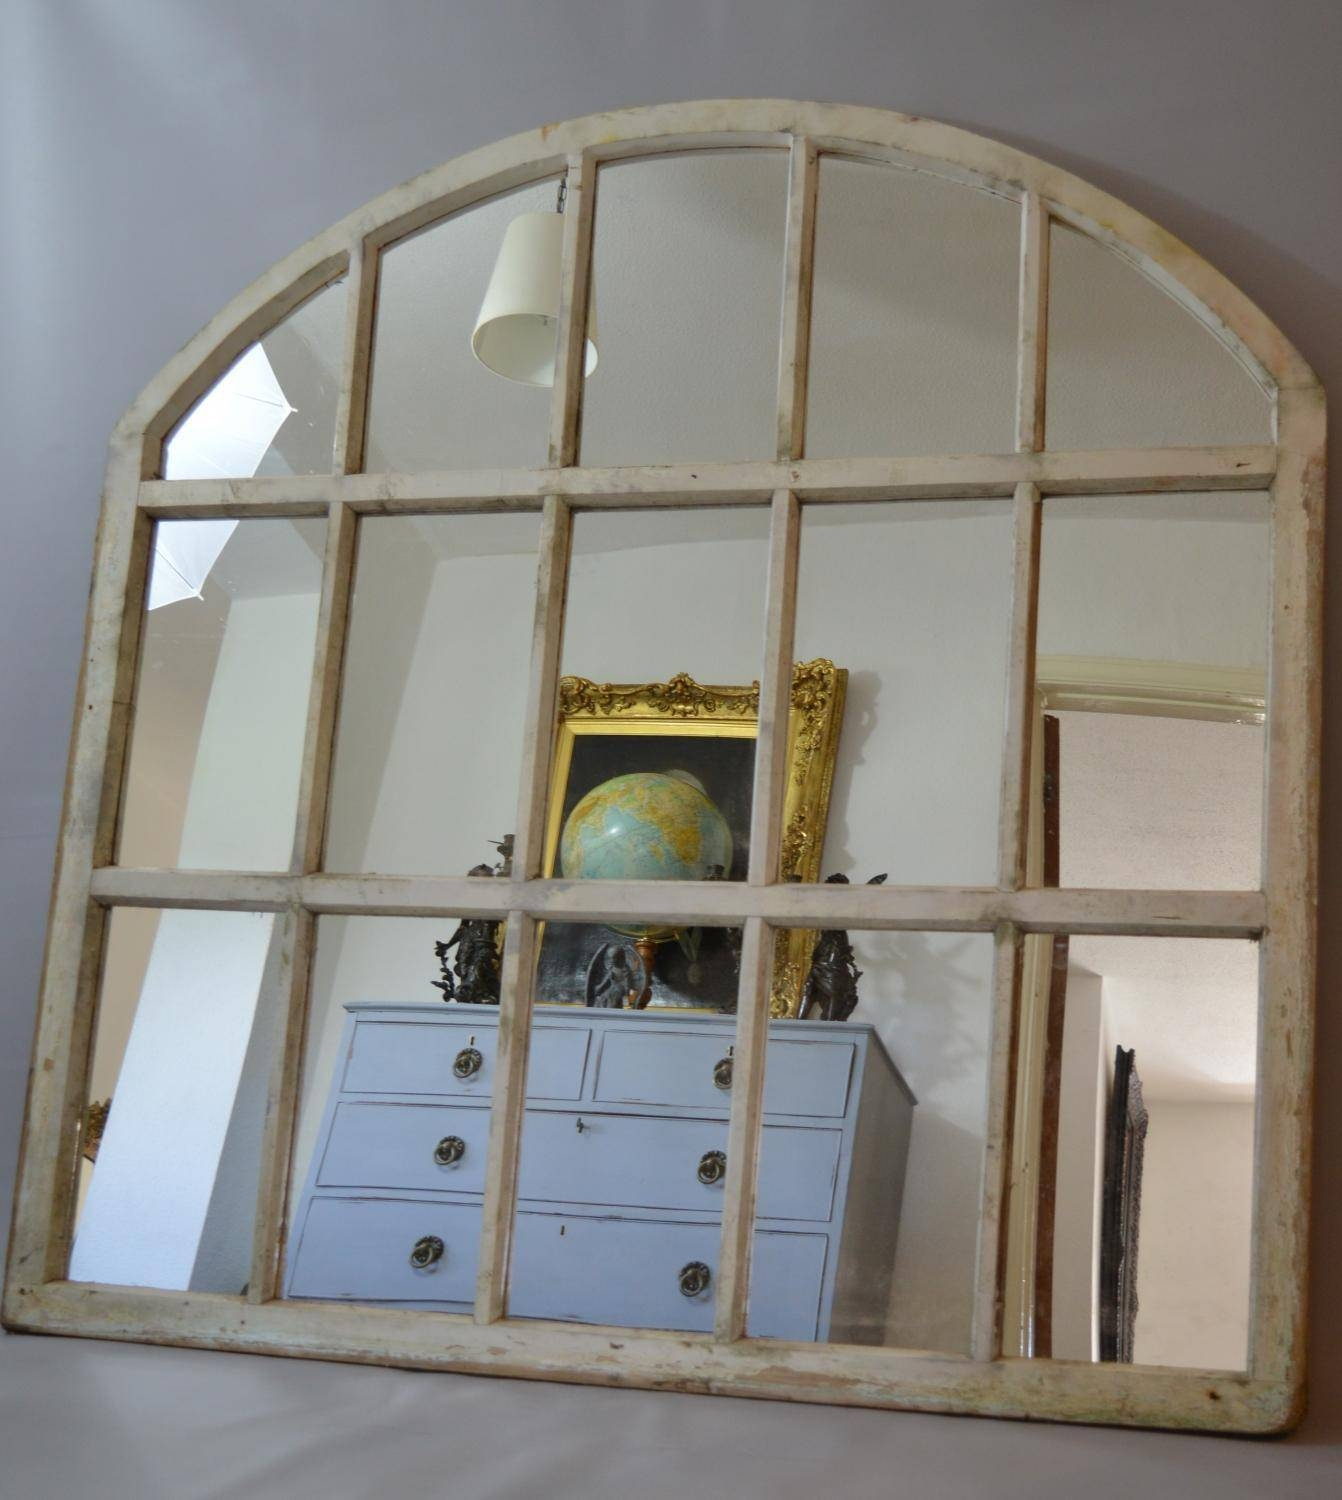 Large Arched Window Frame Mirror In Mirrors With Image 9 Of